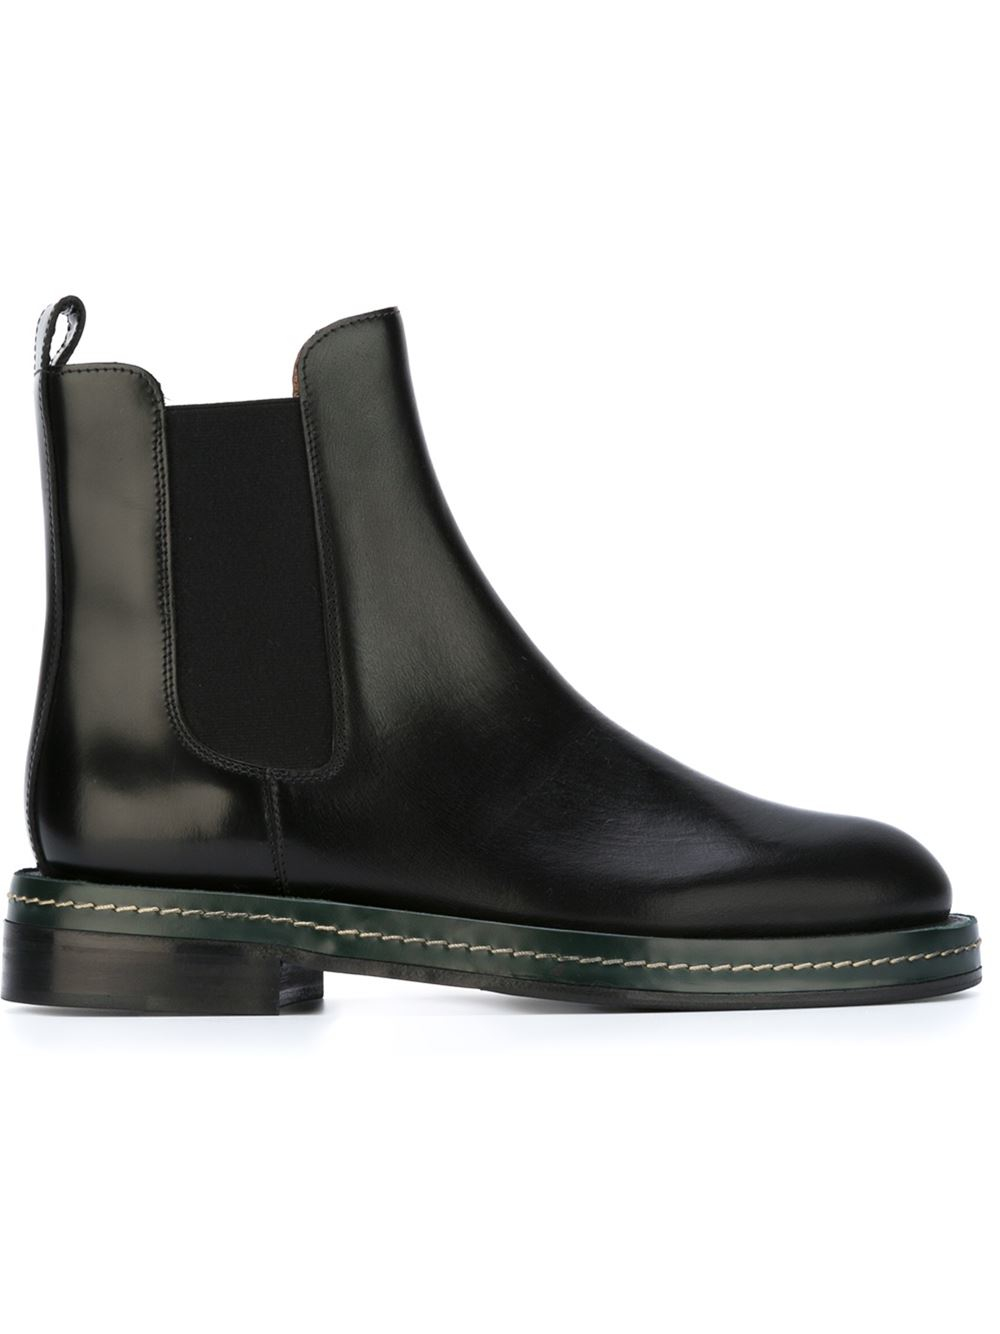 Marni Ankle Boots In Black Lyst